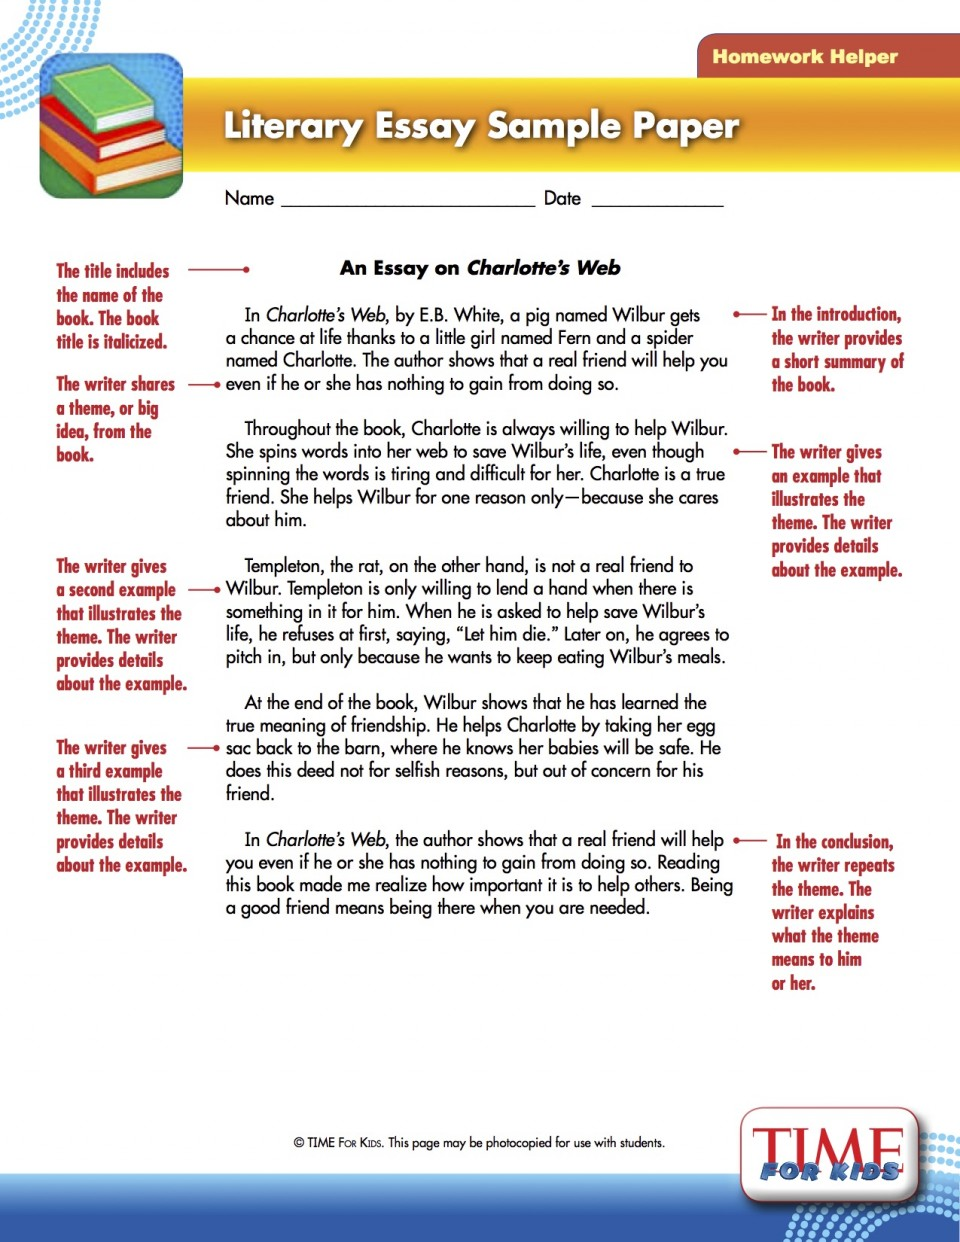 022 Literaryessaysampler 1svmyul How To Write Literary Essay Formidable A Anchor Chart Introduction Example Good 960